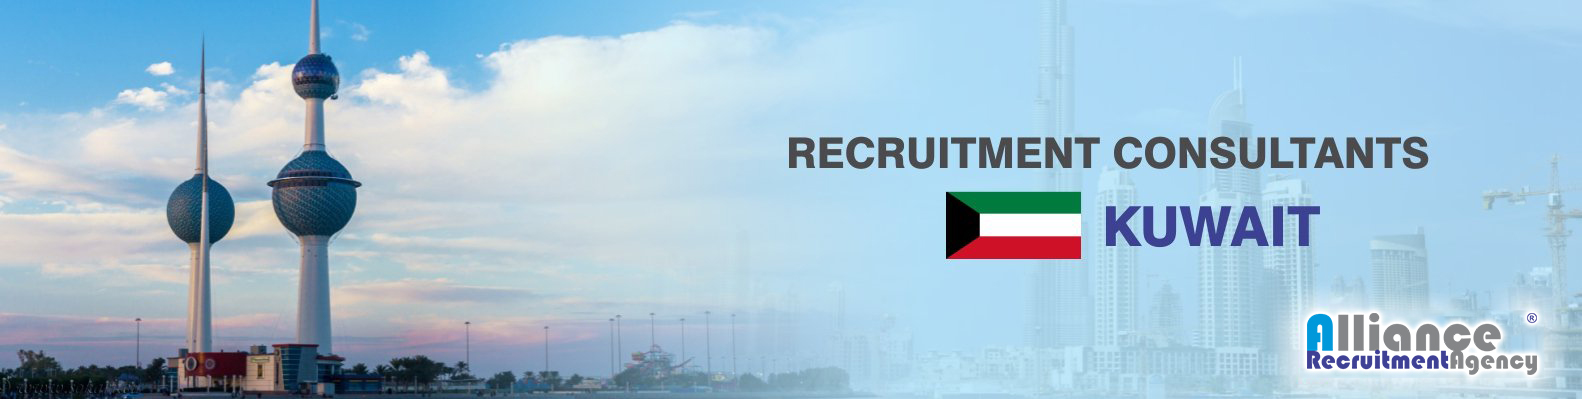 kuwait recruitment consultants